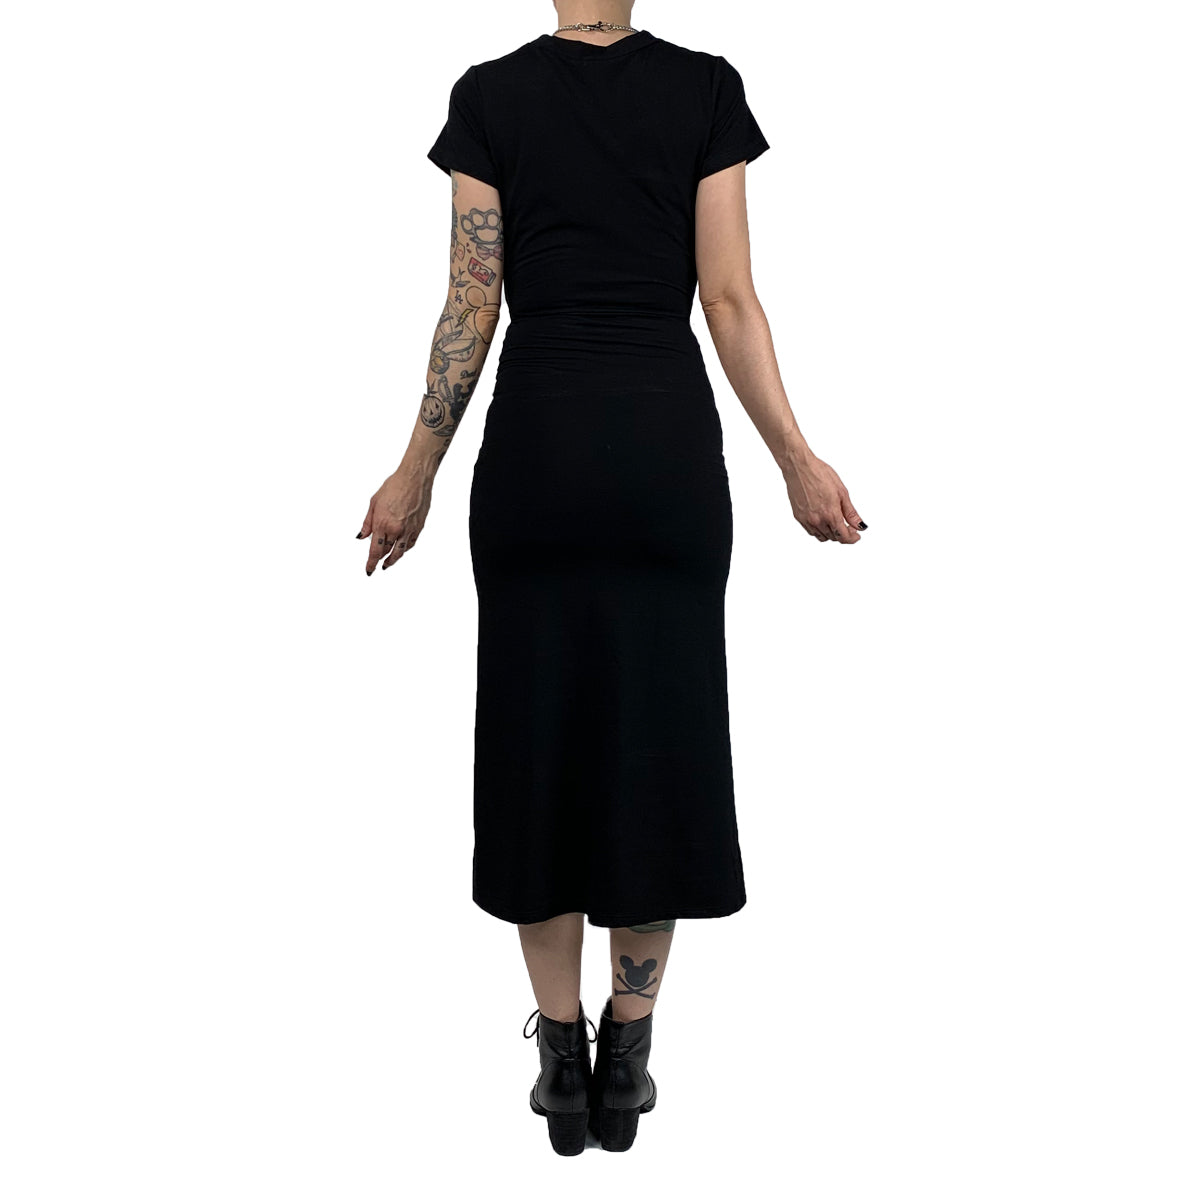 Tie Me Up T-shirt Dress (XS- 3XL) Limited Edition